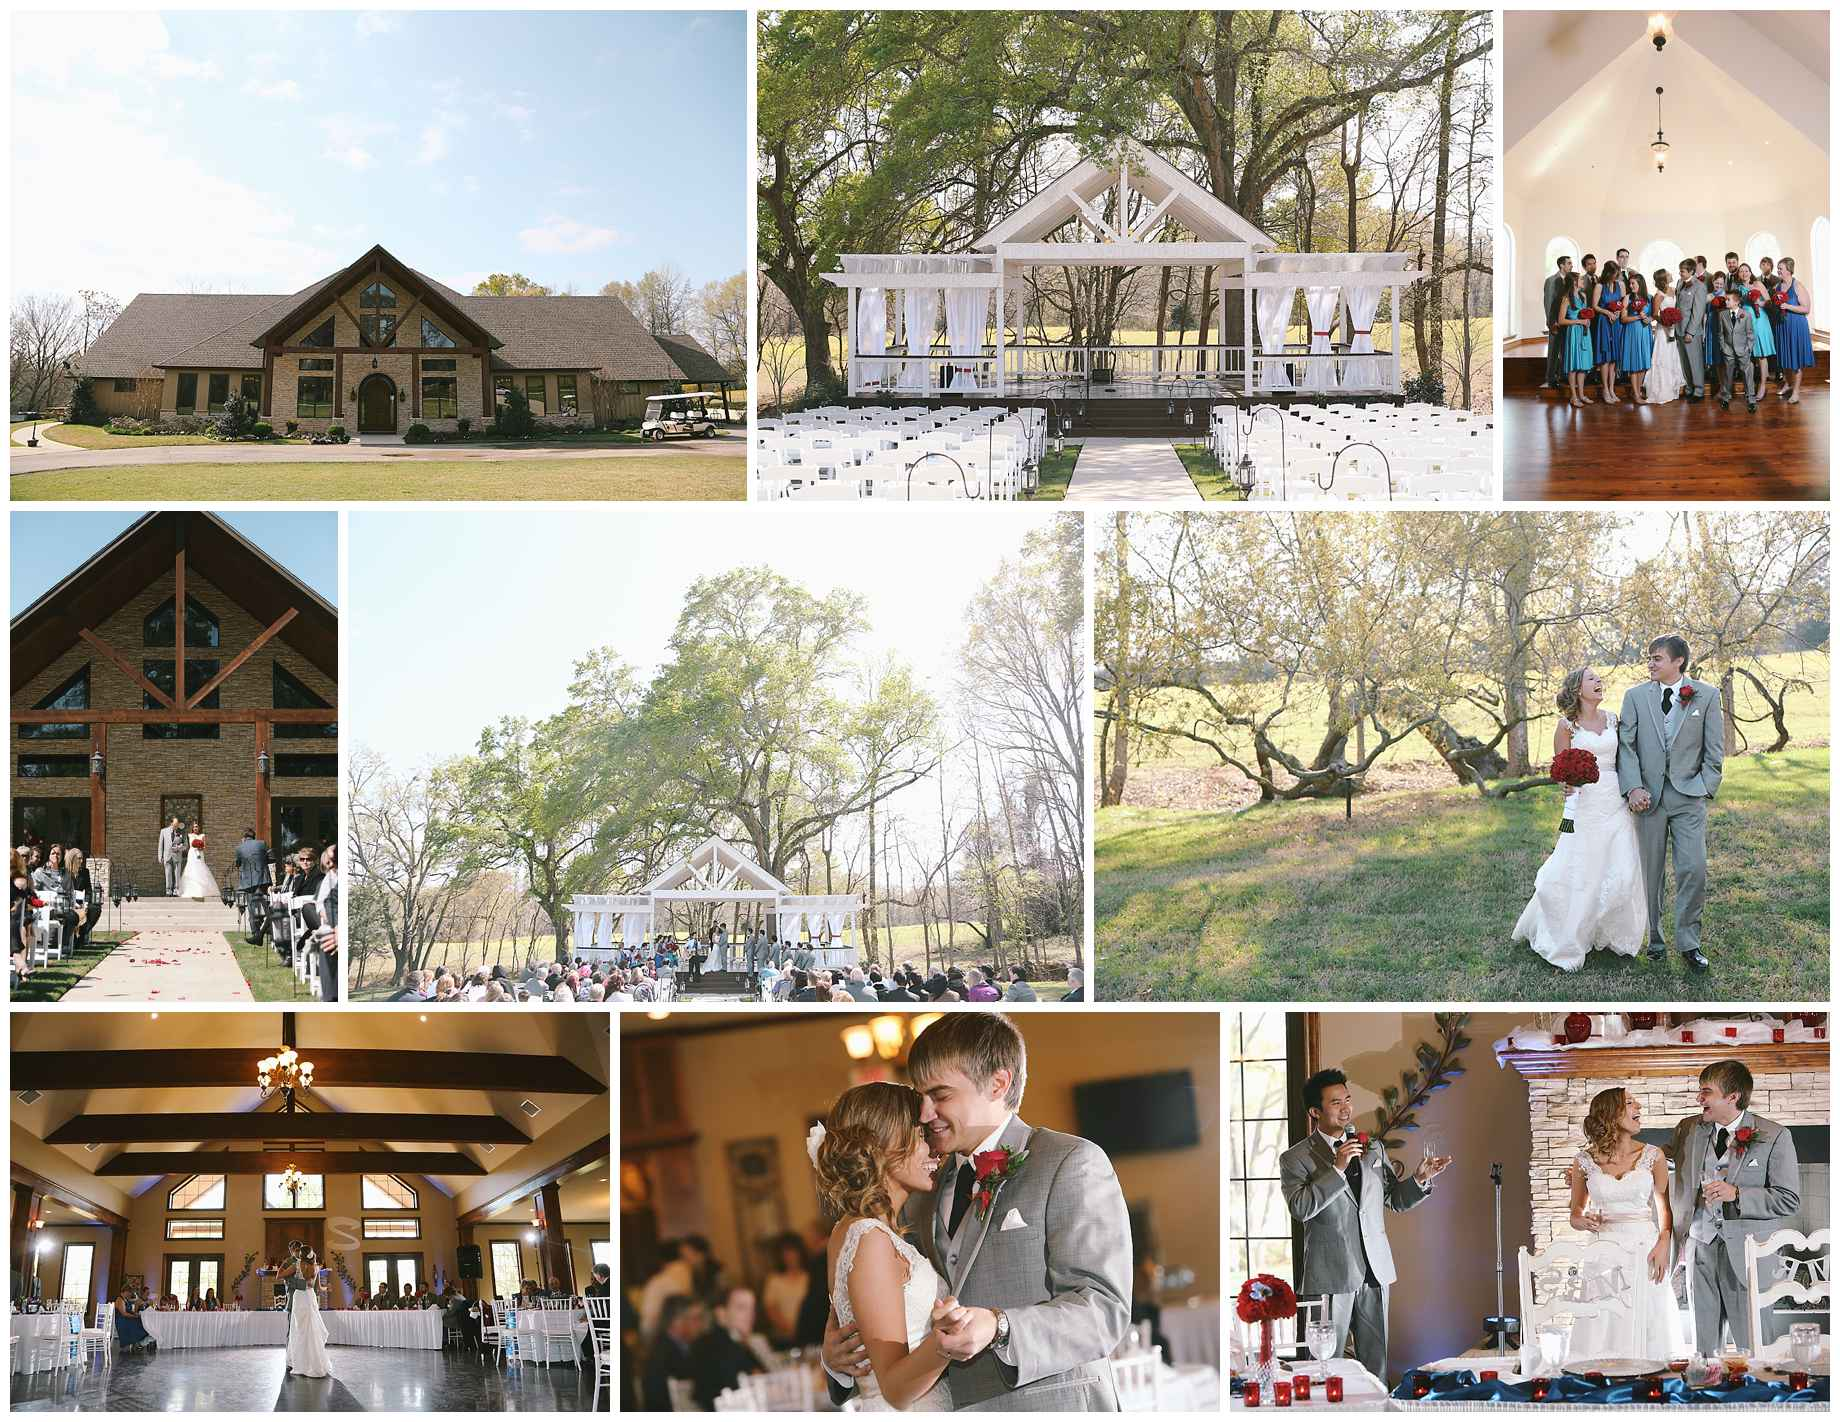 10 amazing places to get married in east texas alexm for Top places to get married